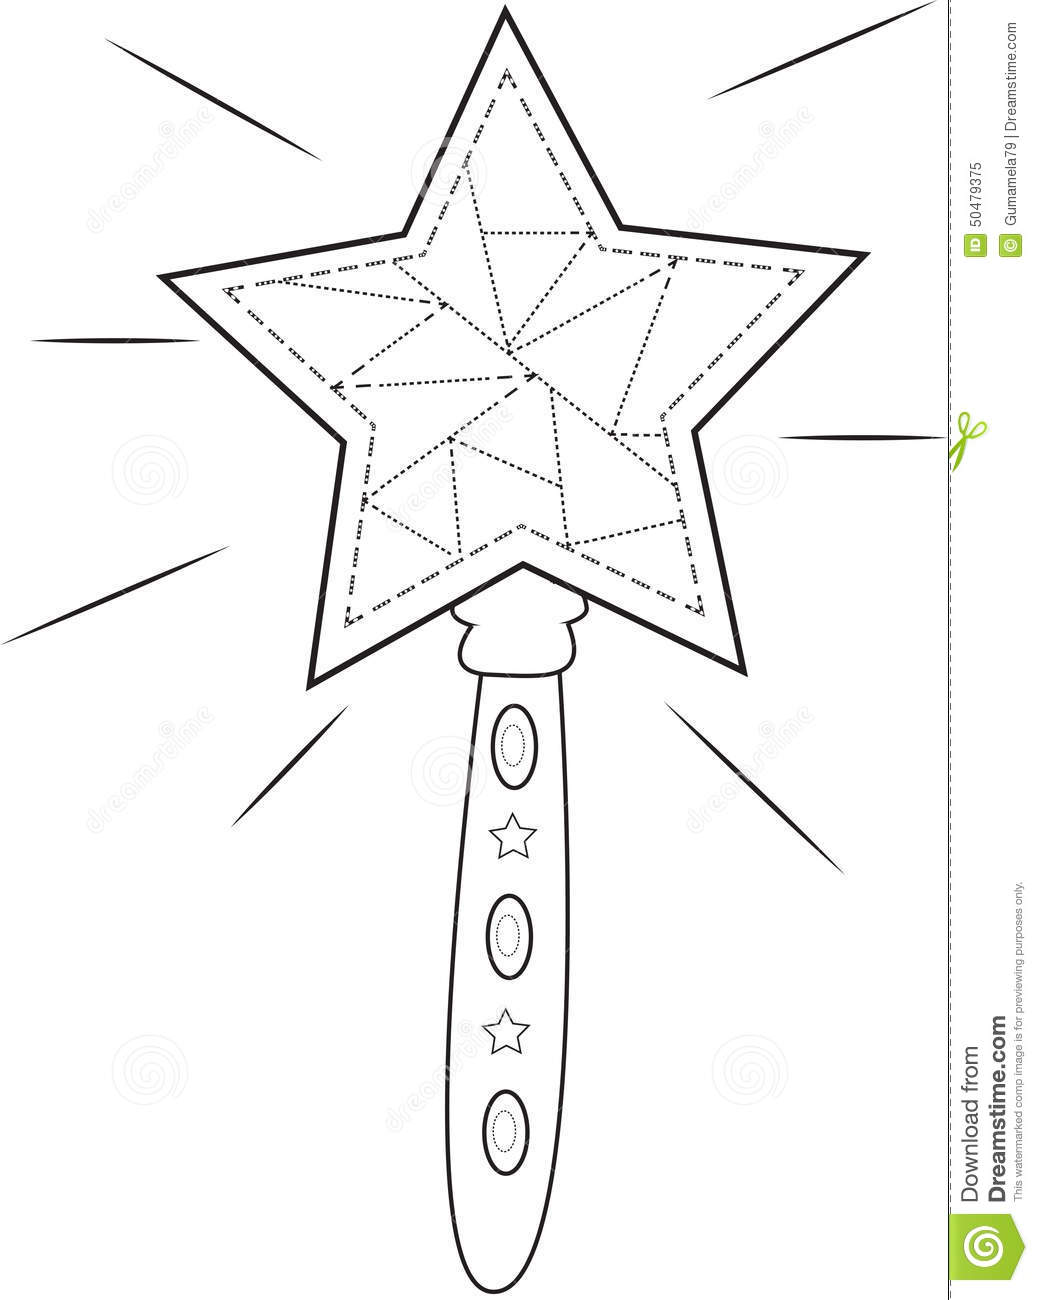 Star Wand Coloring Page Stock Illustration Image 50479375